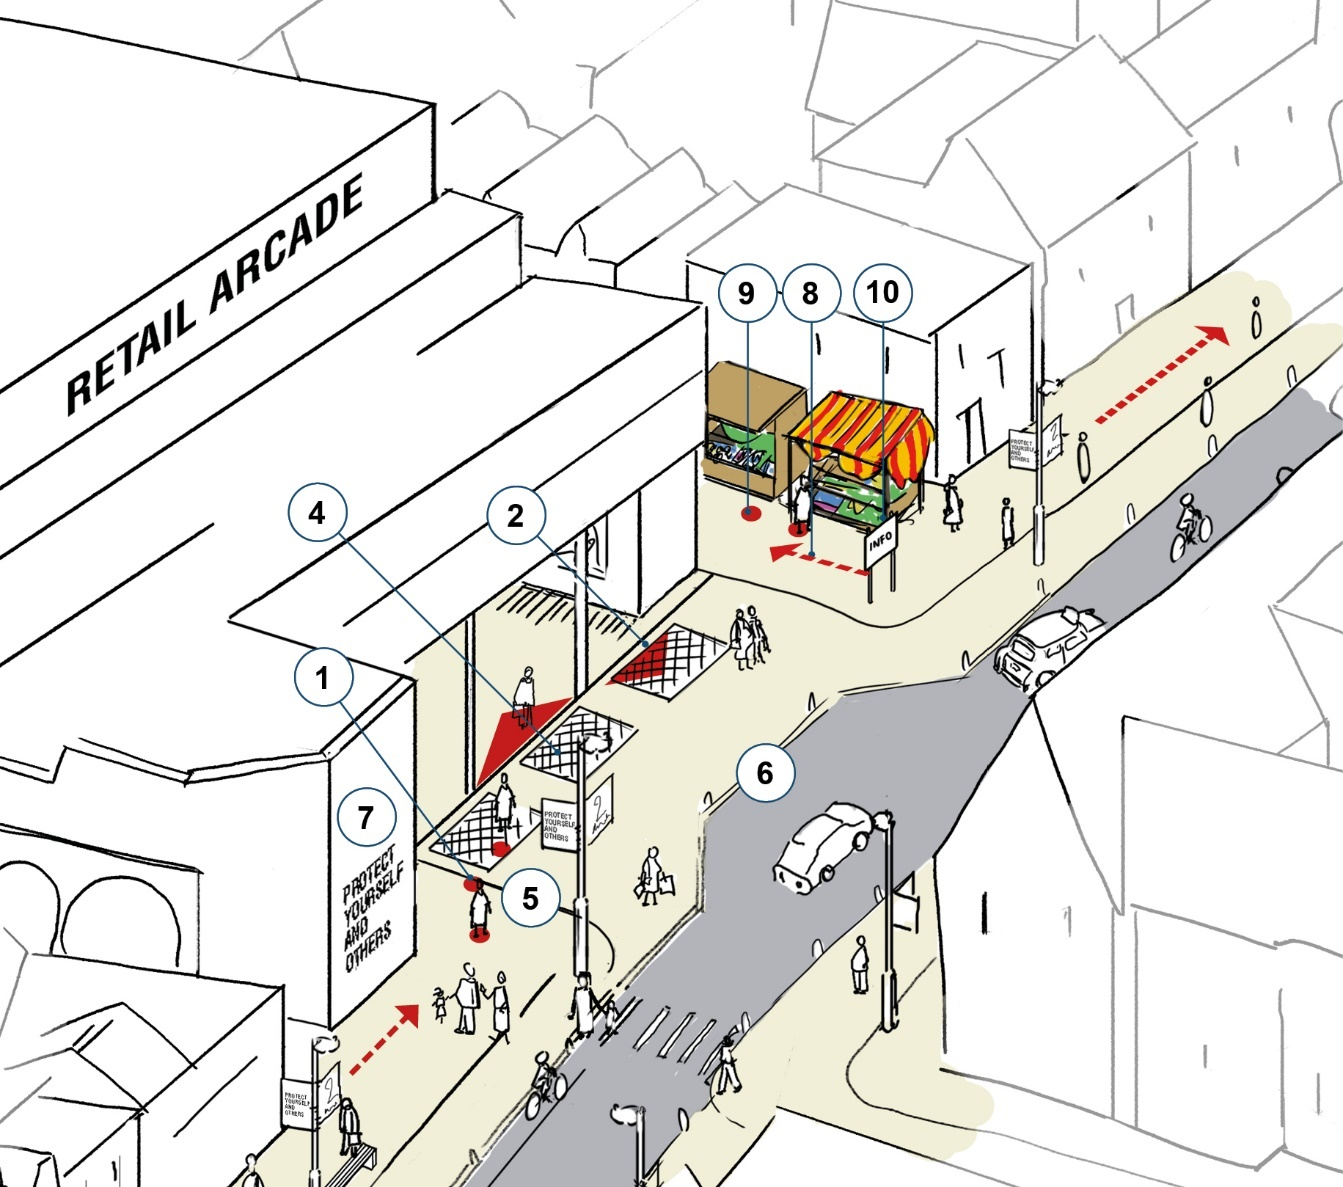 Typical temporary interventions to consider for retail areas